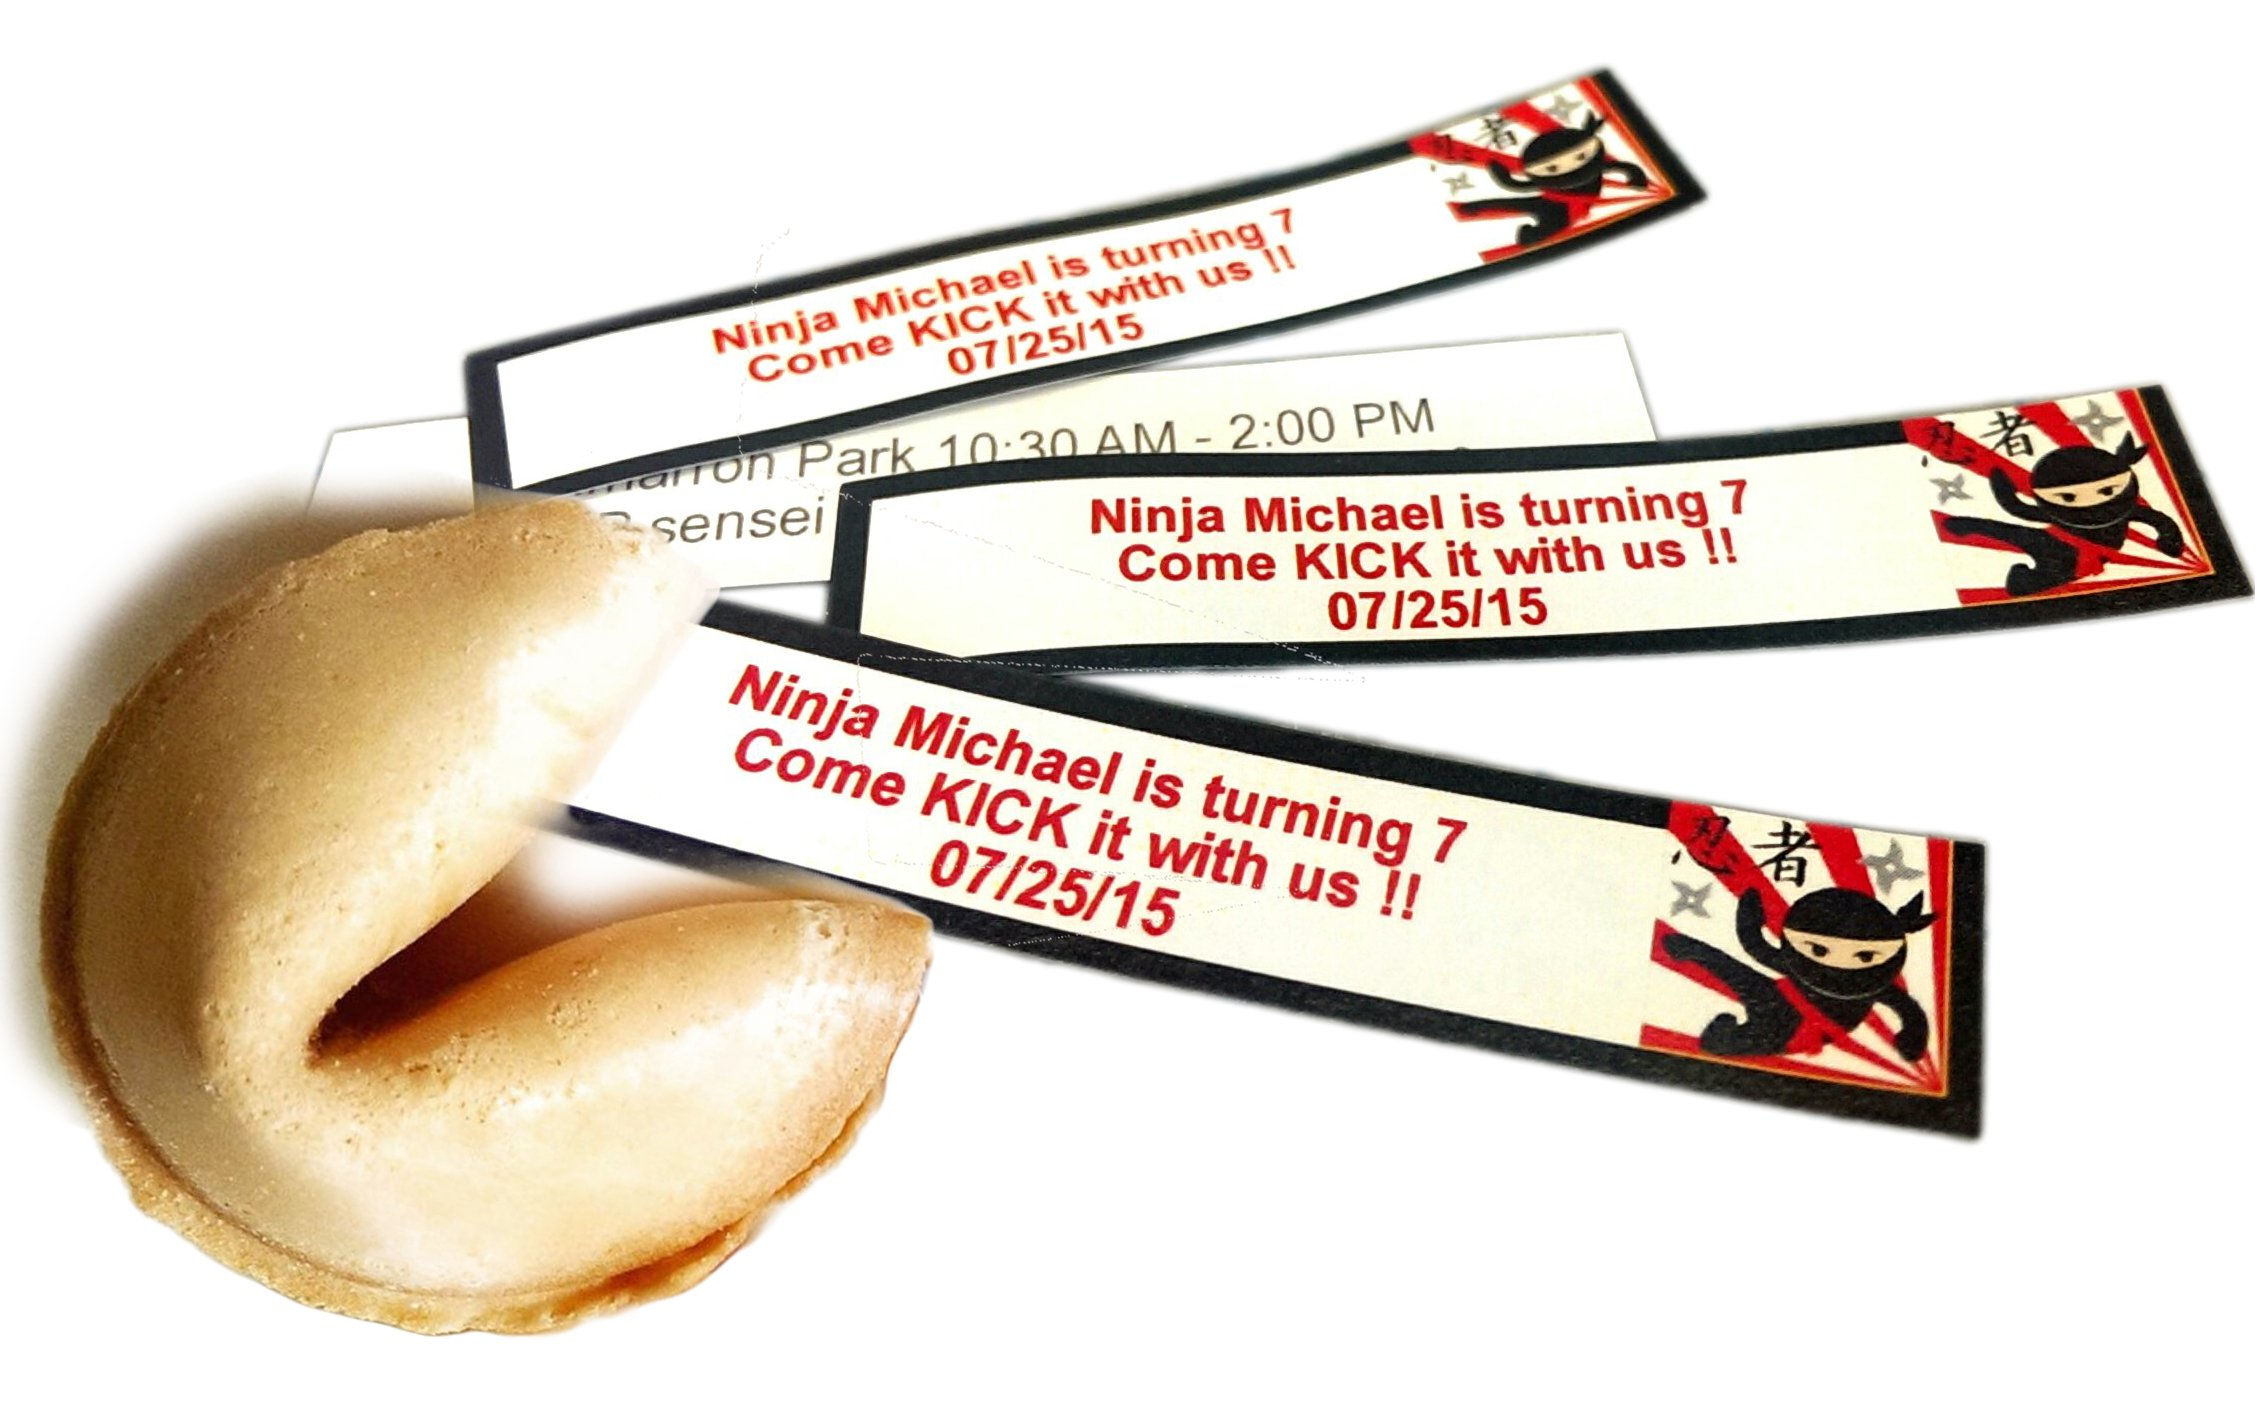 Greenfire Custom Fortune Cookies, for Special Events and Occasions, Full Color Fortune Printing, Premium Vanilla, Bulk Quantity by Greenfire Custom Fortune Cookies (Image #5)